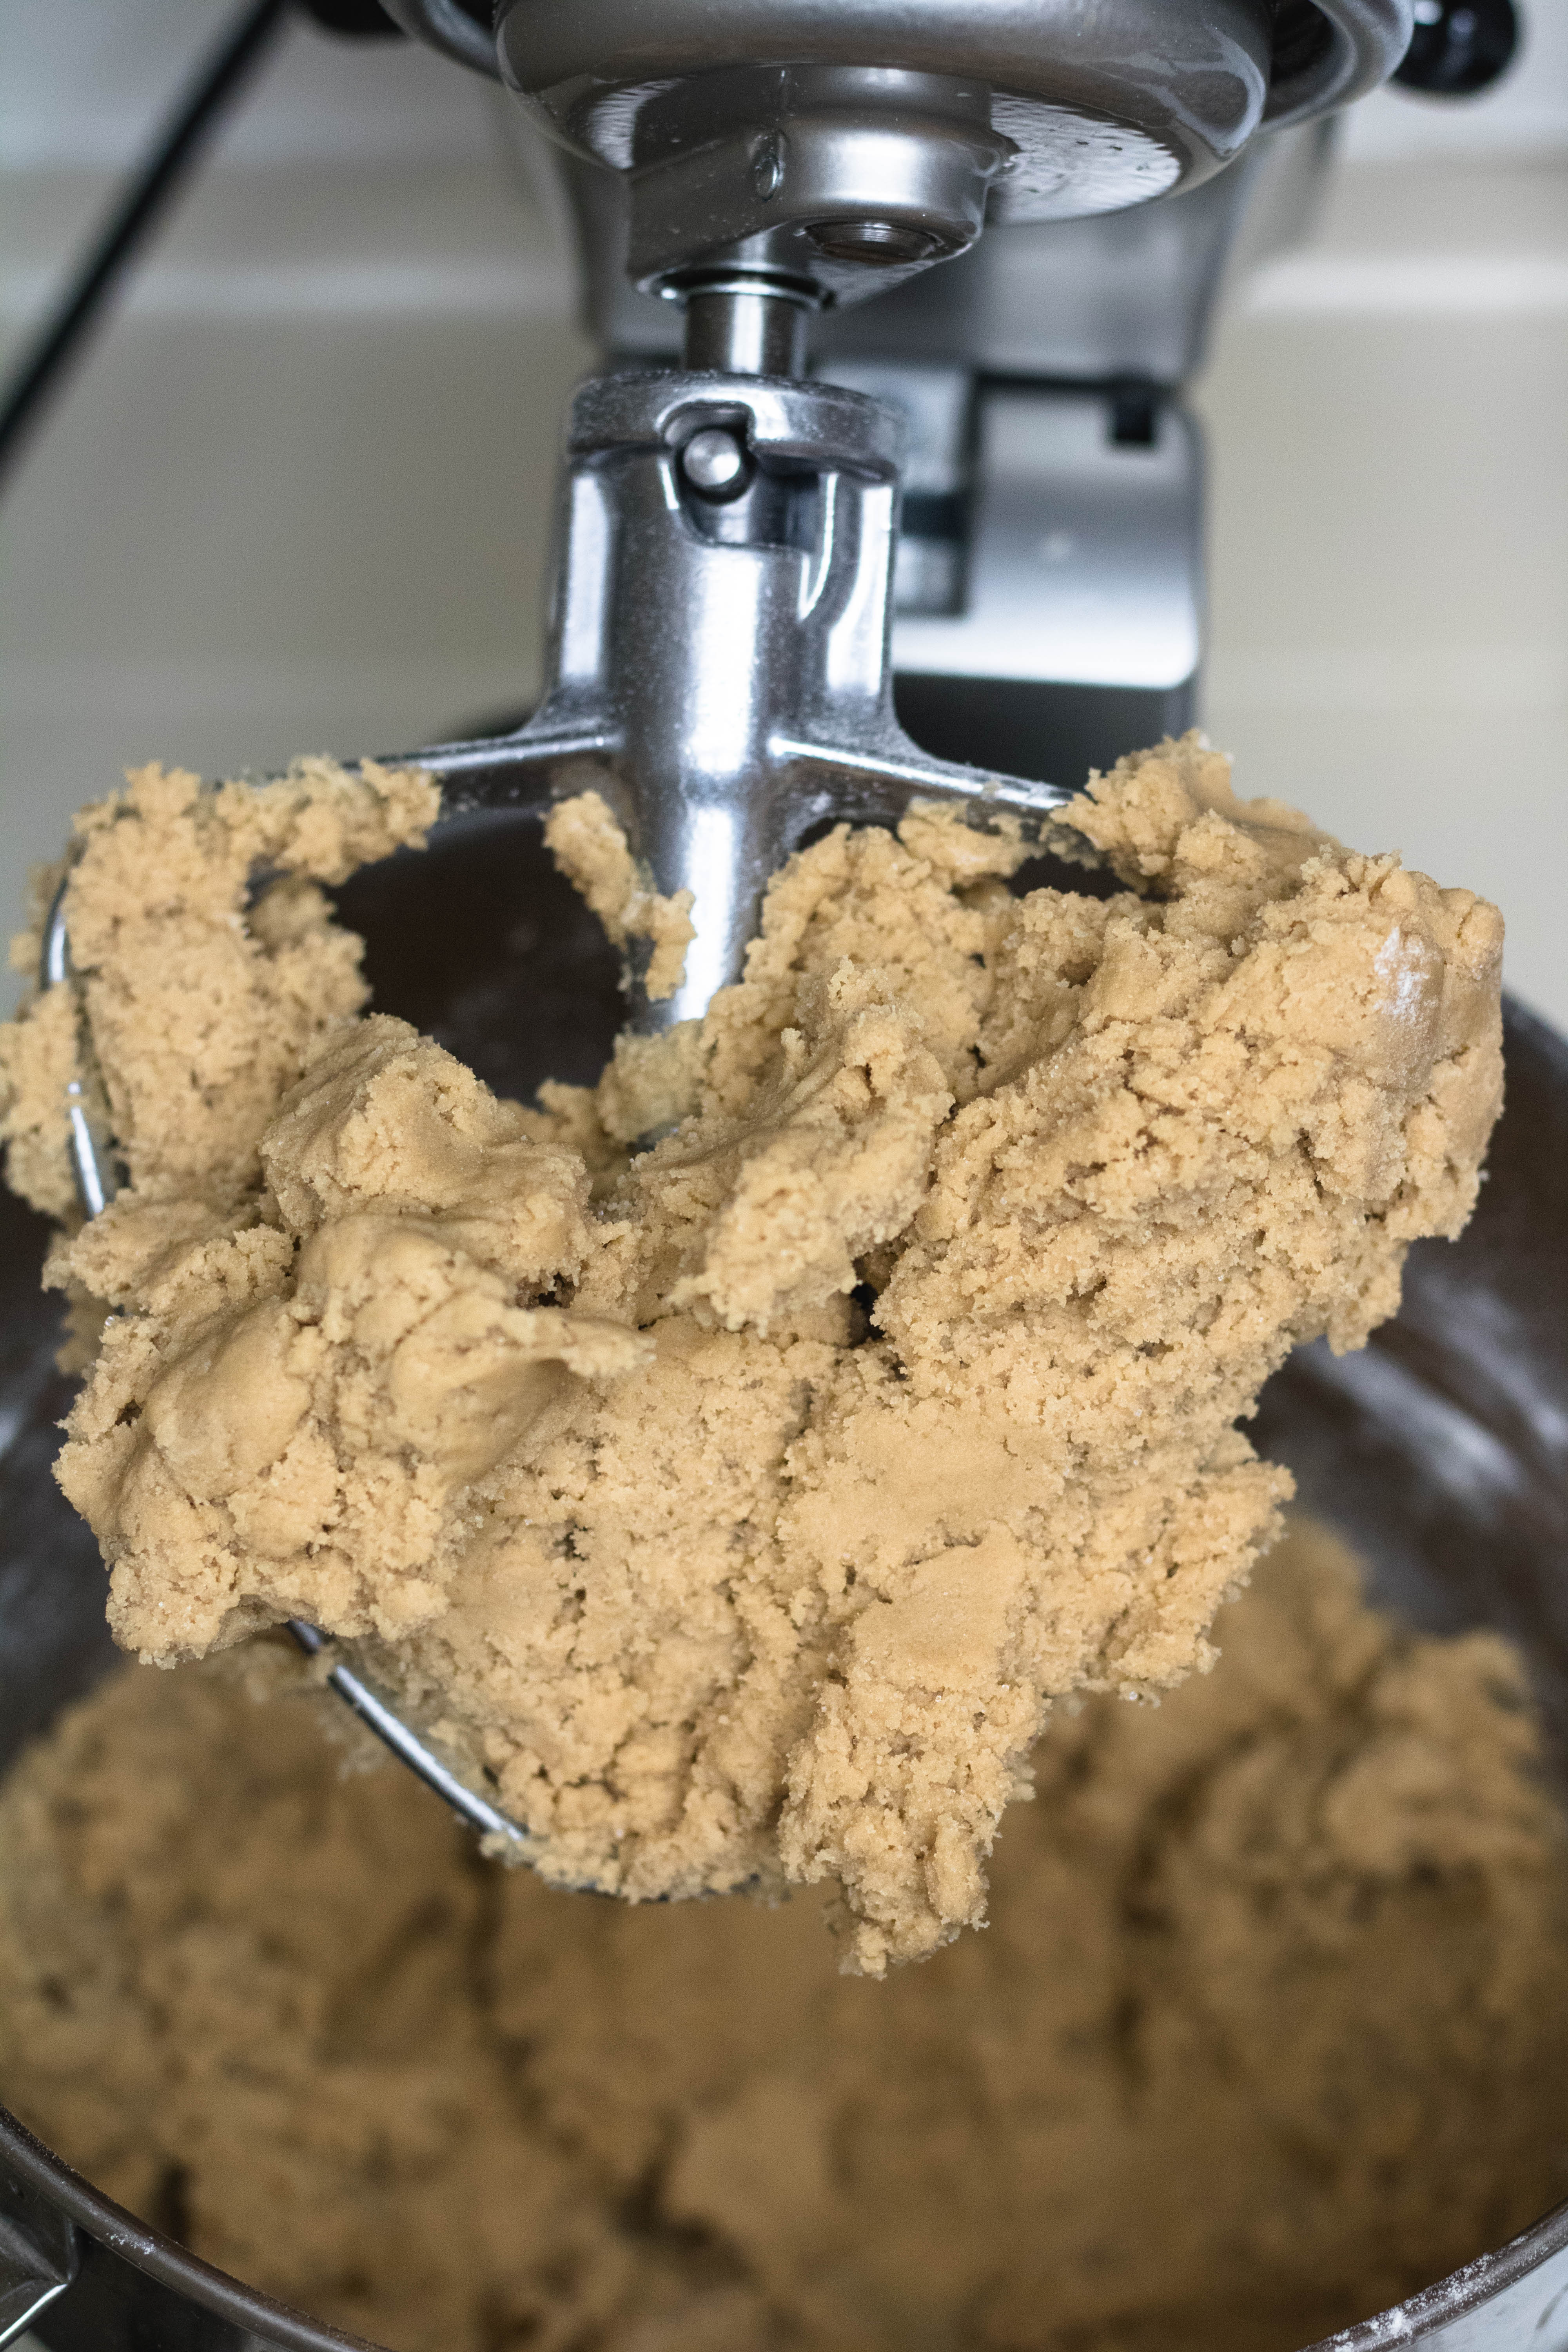 Cookie dough before adding the chocolate chips